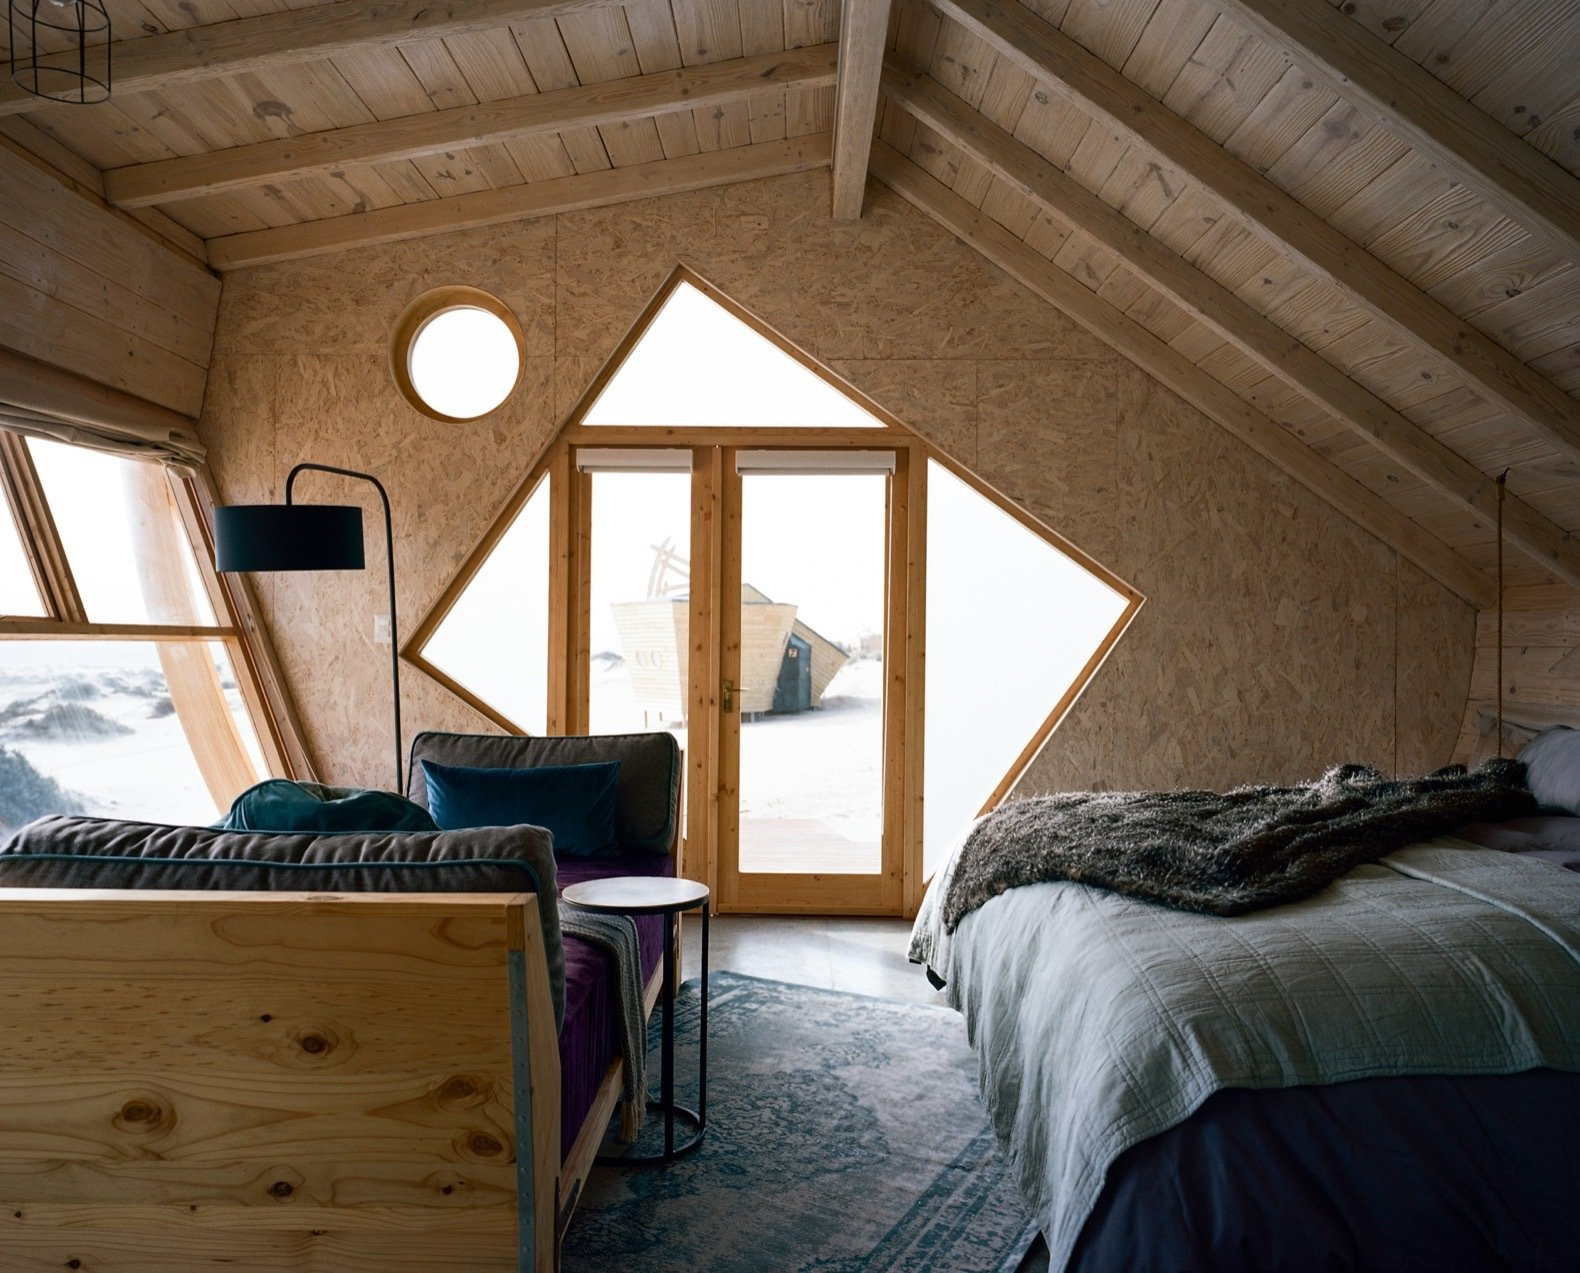 Bedroom, Floor, Bed, Pendant, and Rug The asymmetrical shape and tilted lines reinforce the impression that the cabins are capsized ships.   Best Bedroom Medium Hardwood Floor Photos from Explore Namibia's Haunting Coast With These Luxe Prefab Cabins